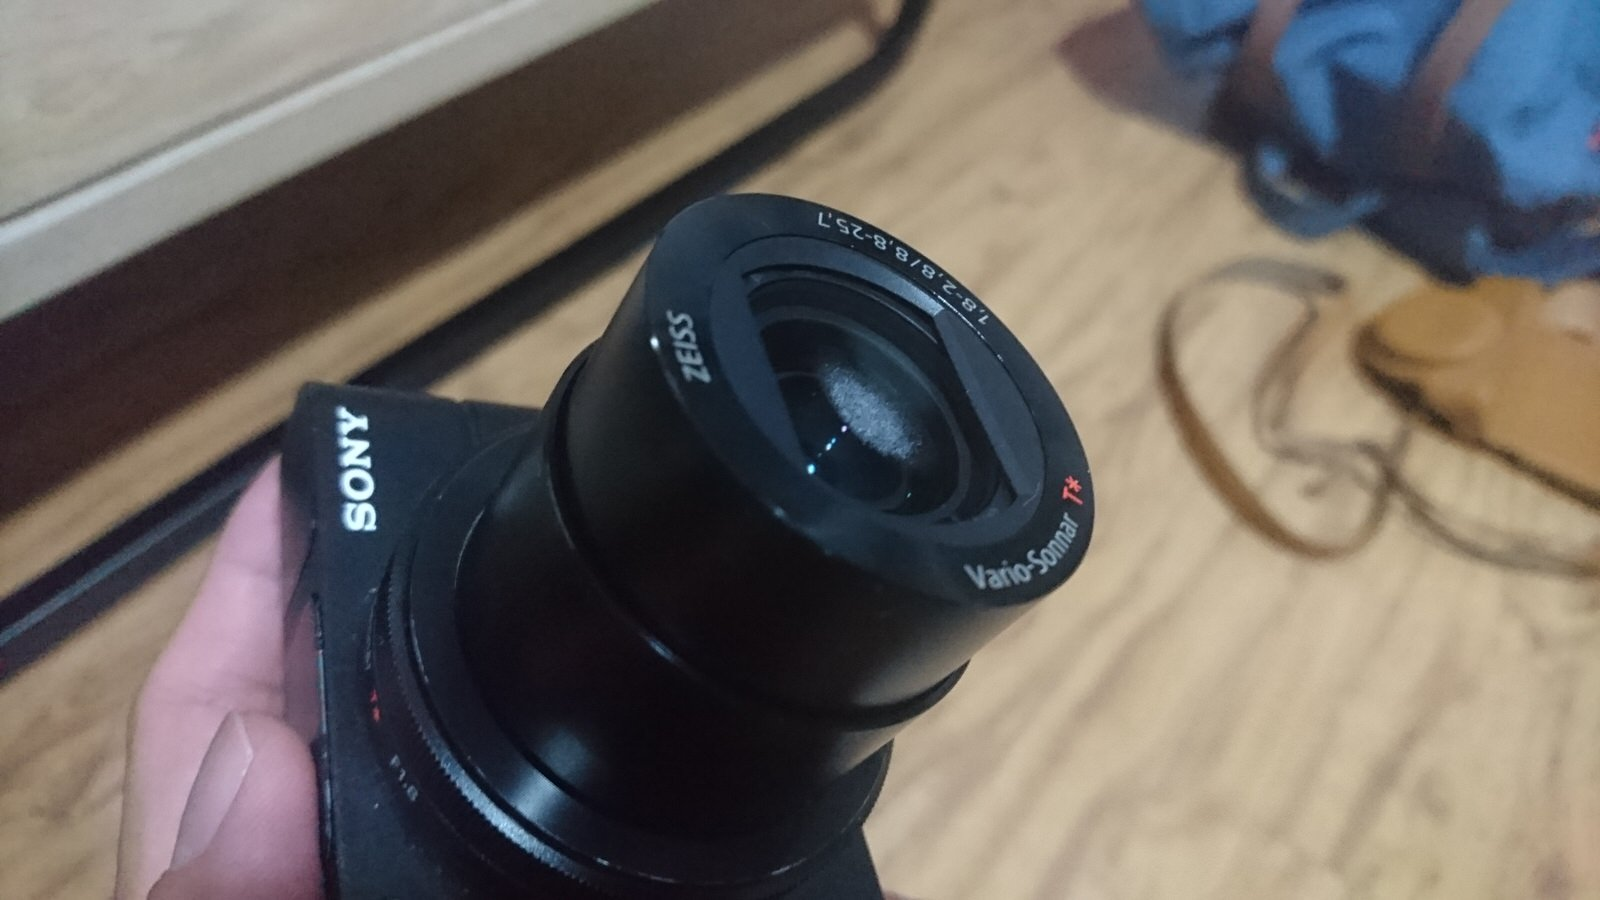 How to read camera lens